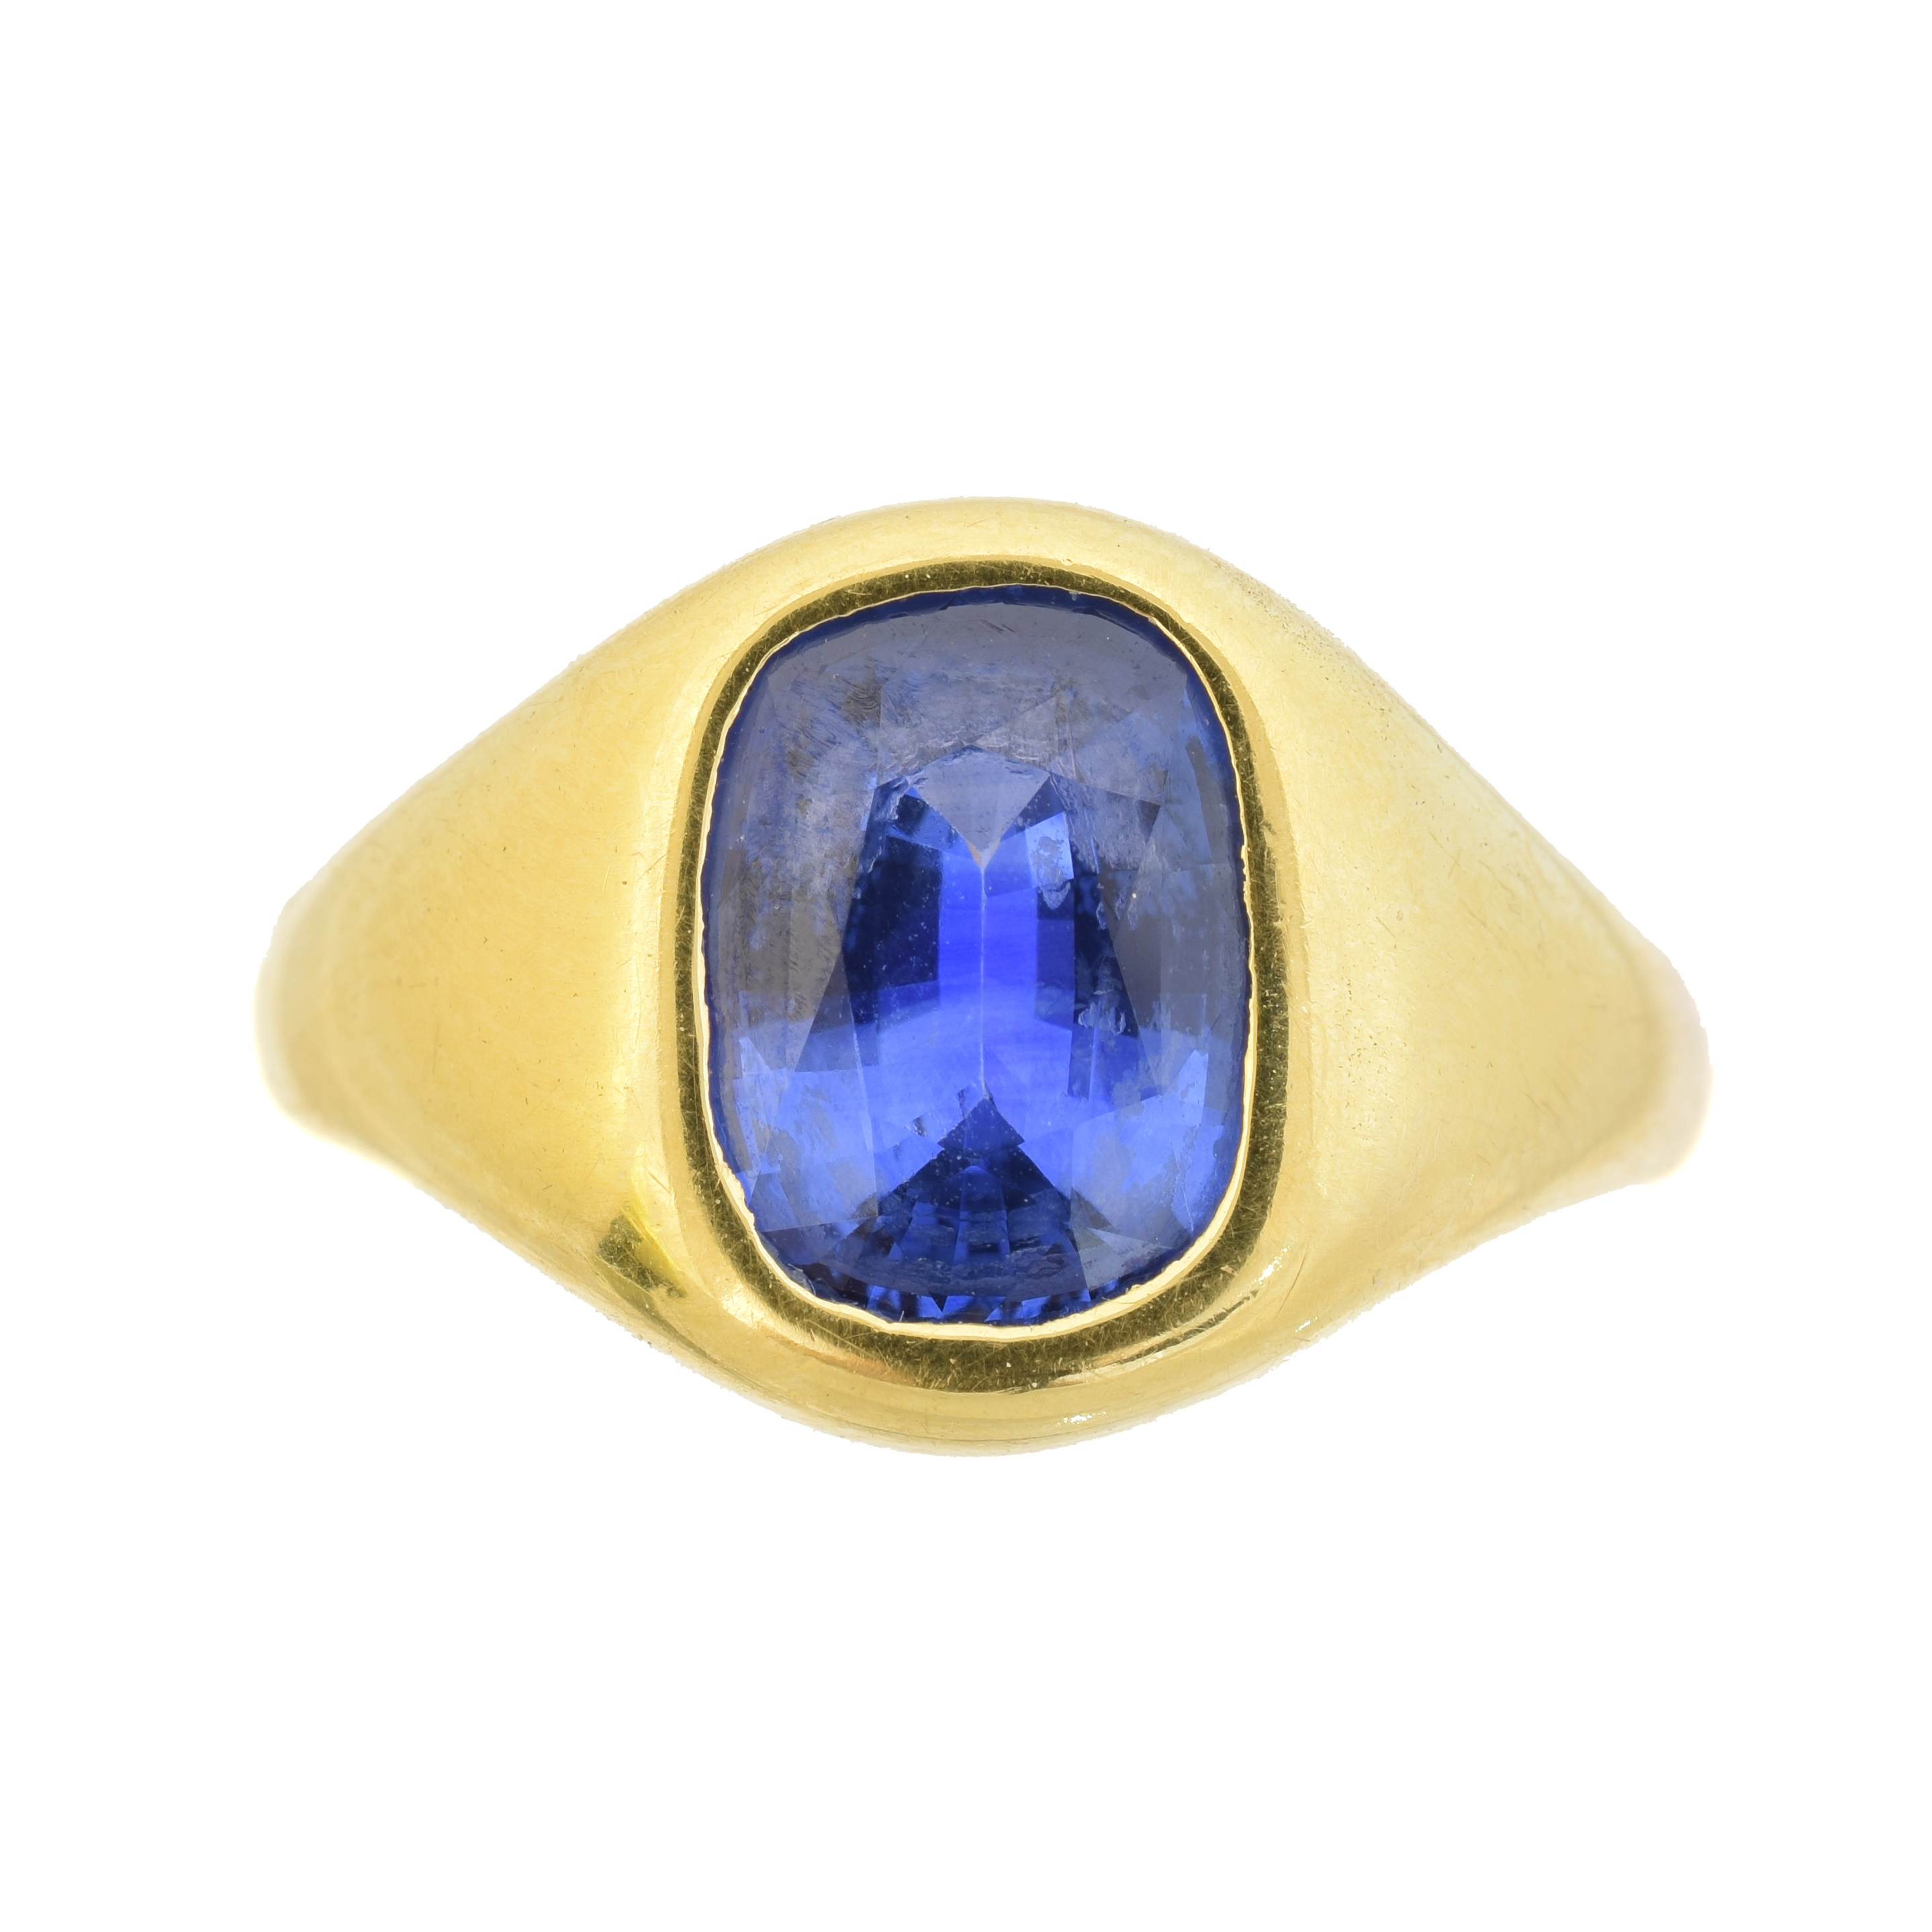 An 18ct gold sapphire single stone ring, the oval shape sapphire inset to the signet ring, hallmarks for Birmingham, ring size S, gross weight 12.2g.